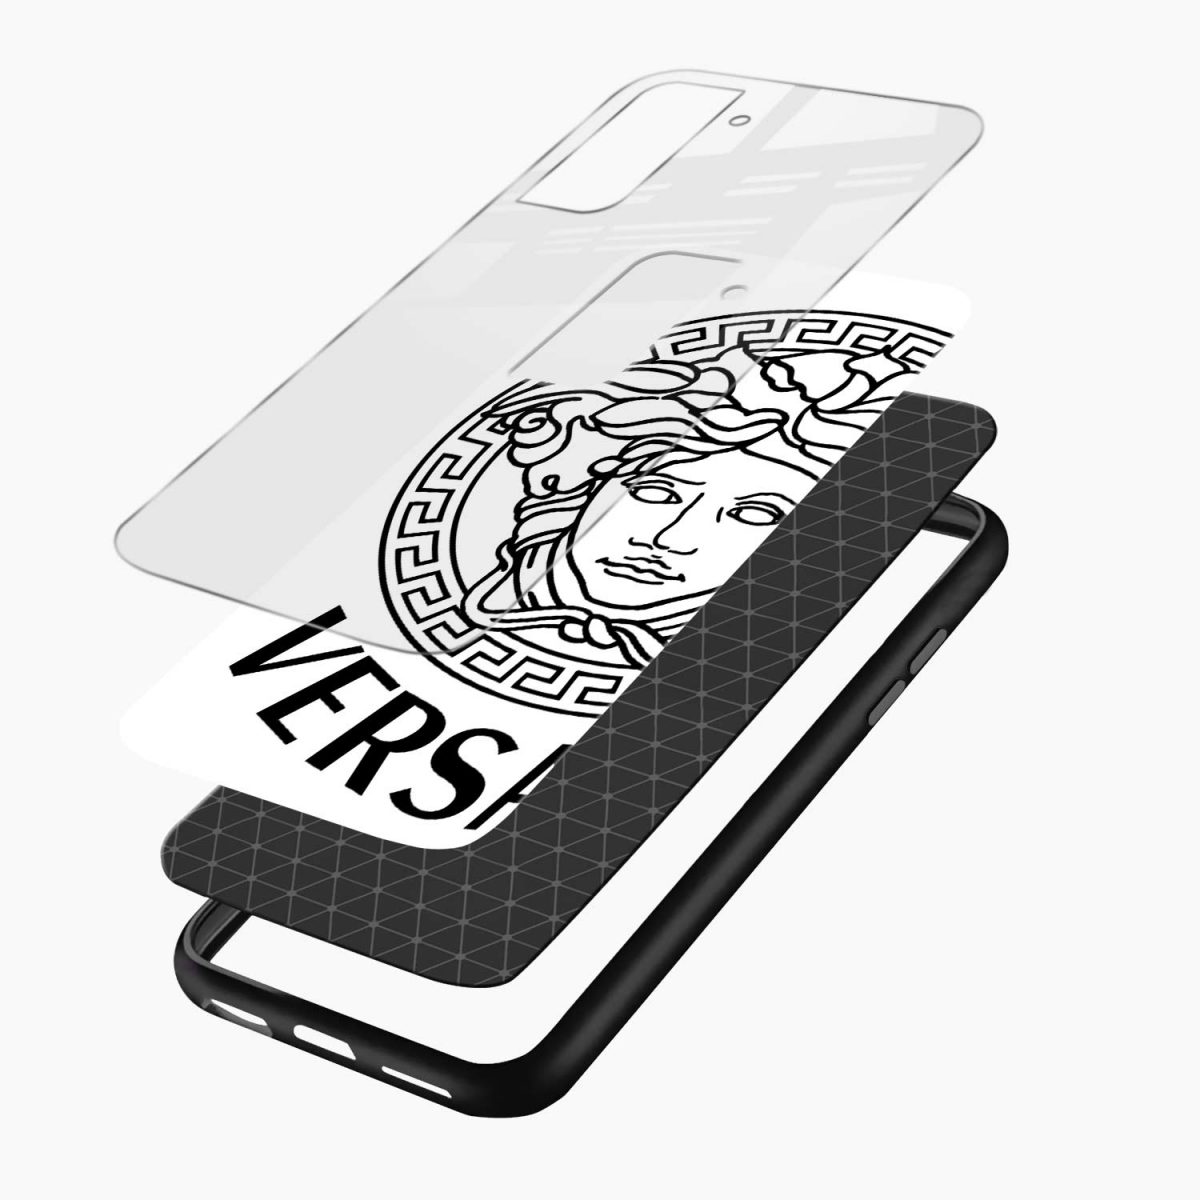 versace black white layers view samsung s21 plug back cover